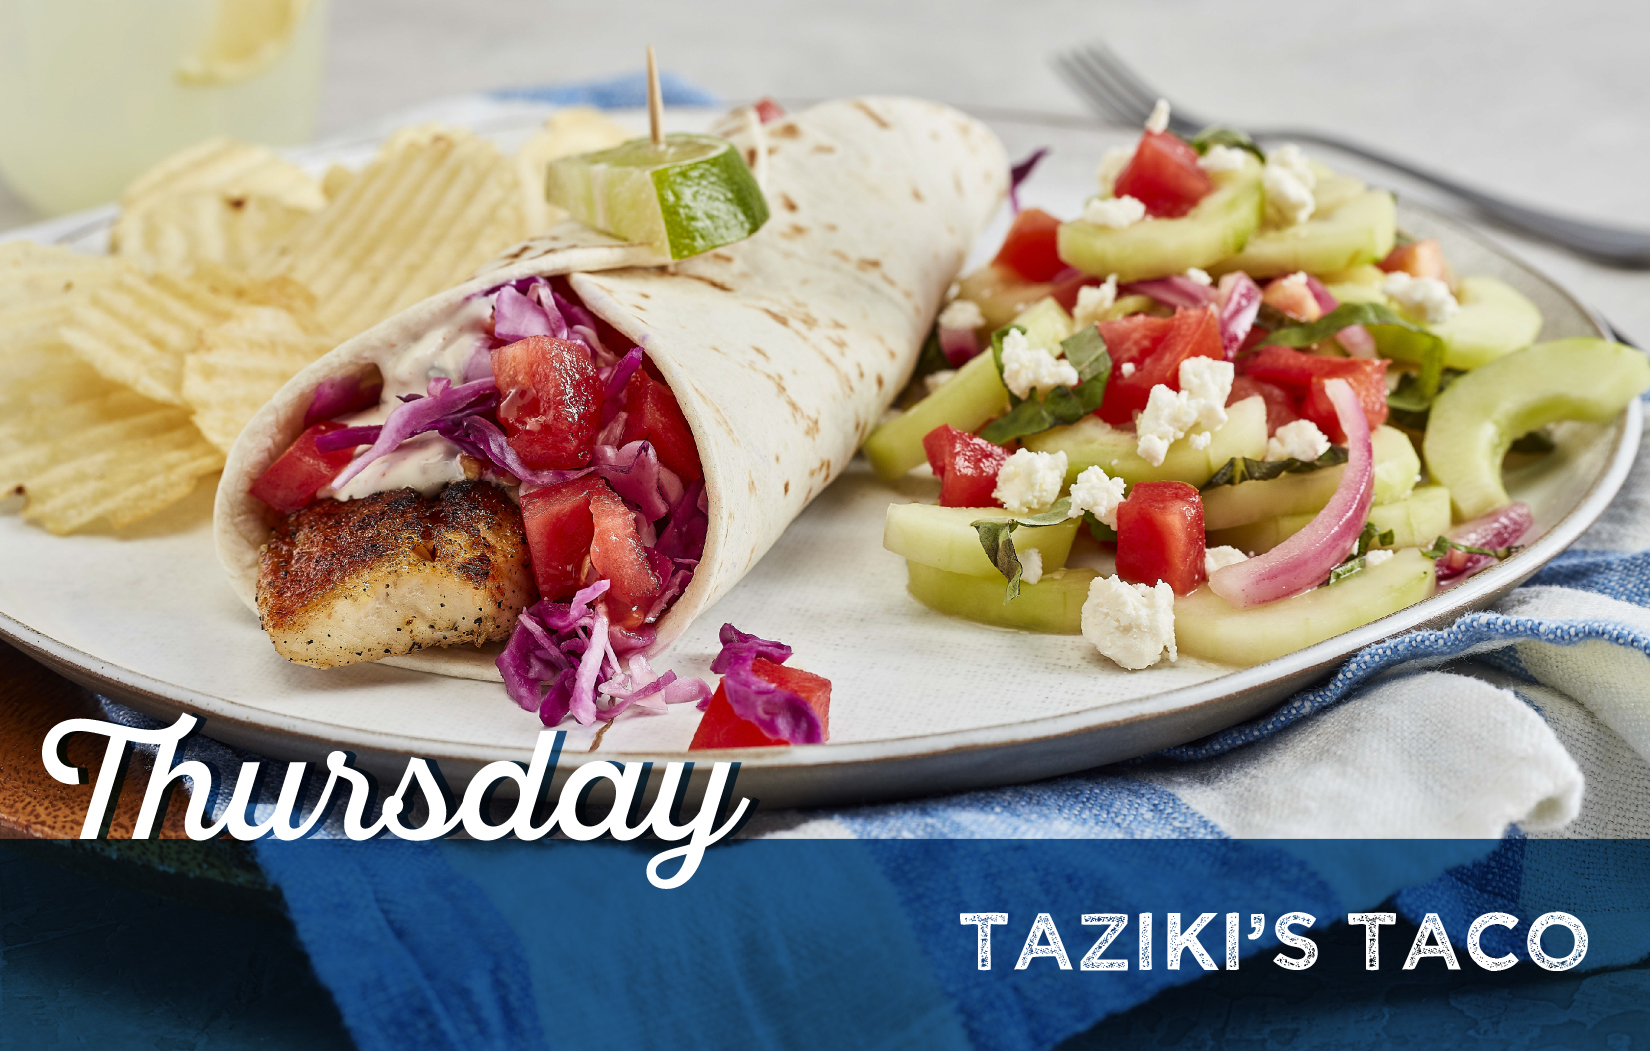 Taziki's Daily Specials-04.jpg